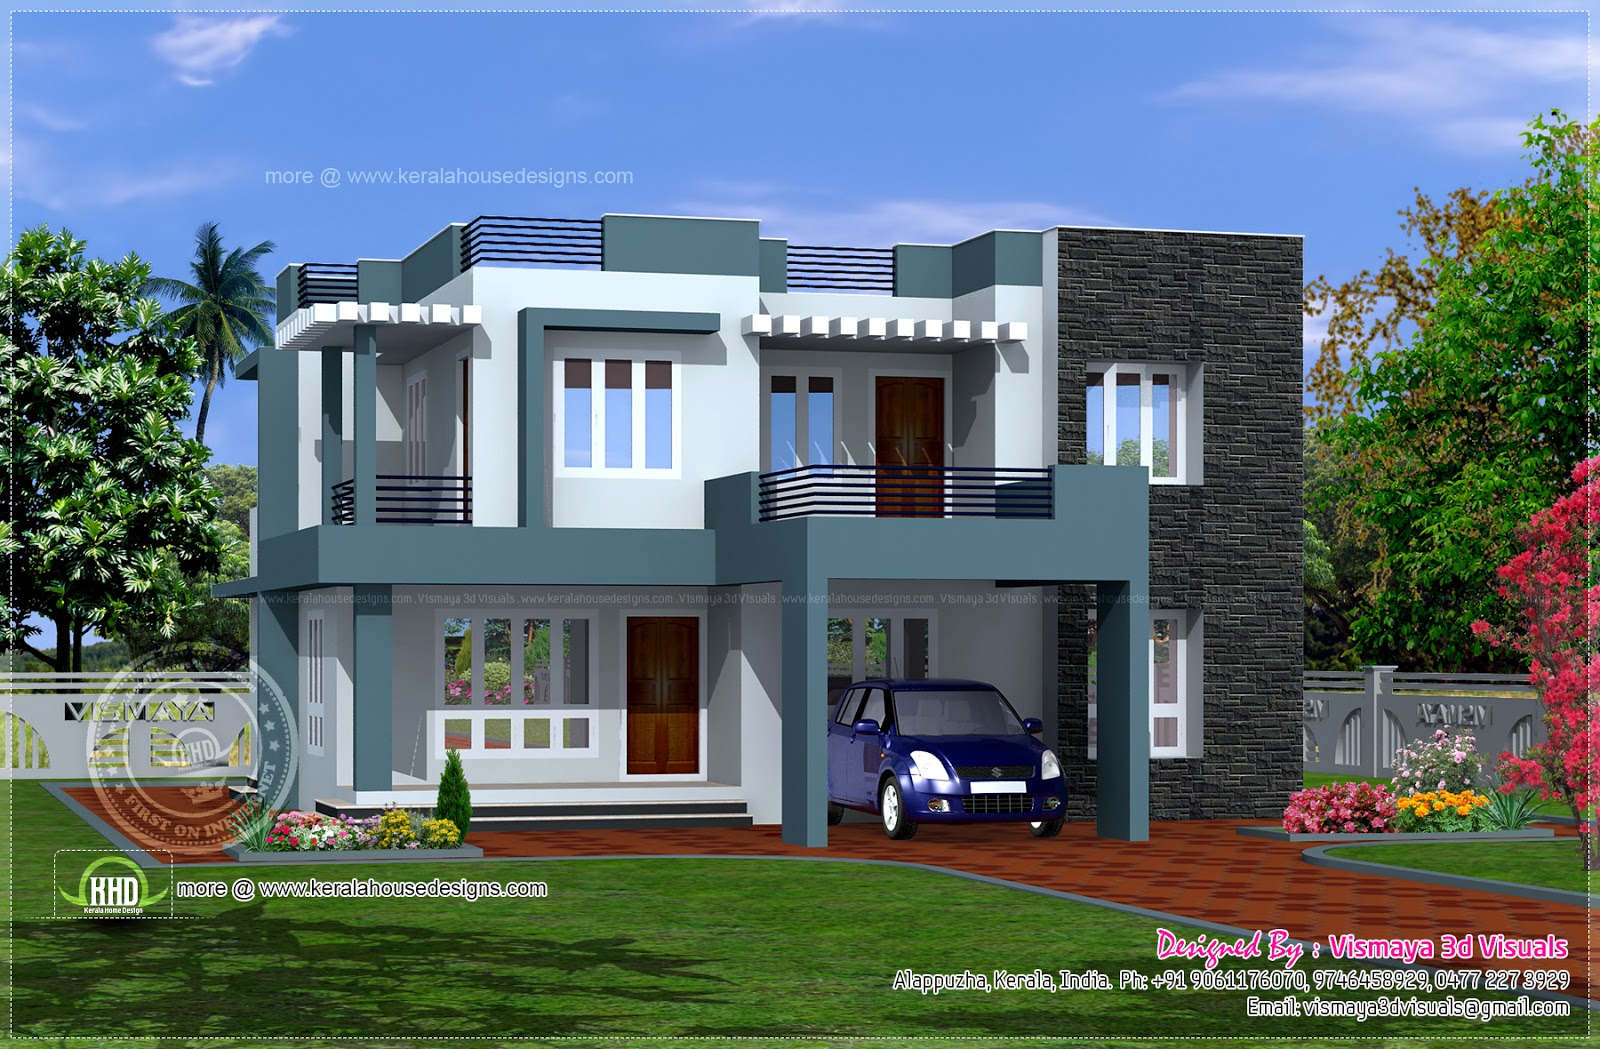 Simple contemporary style villa plan kerala home design and floor plans Simple modern house designs and floor plans